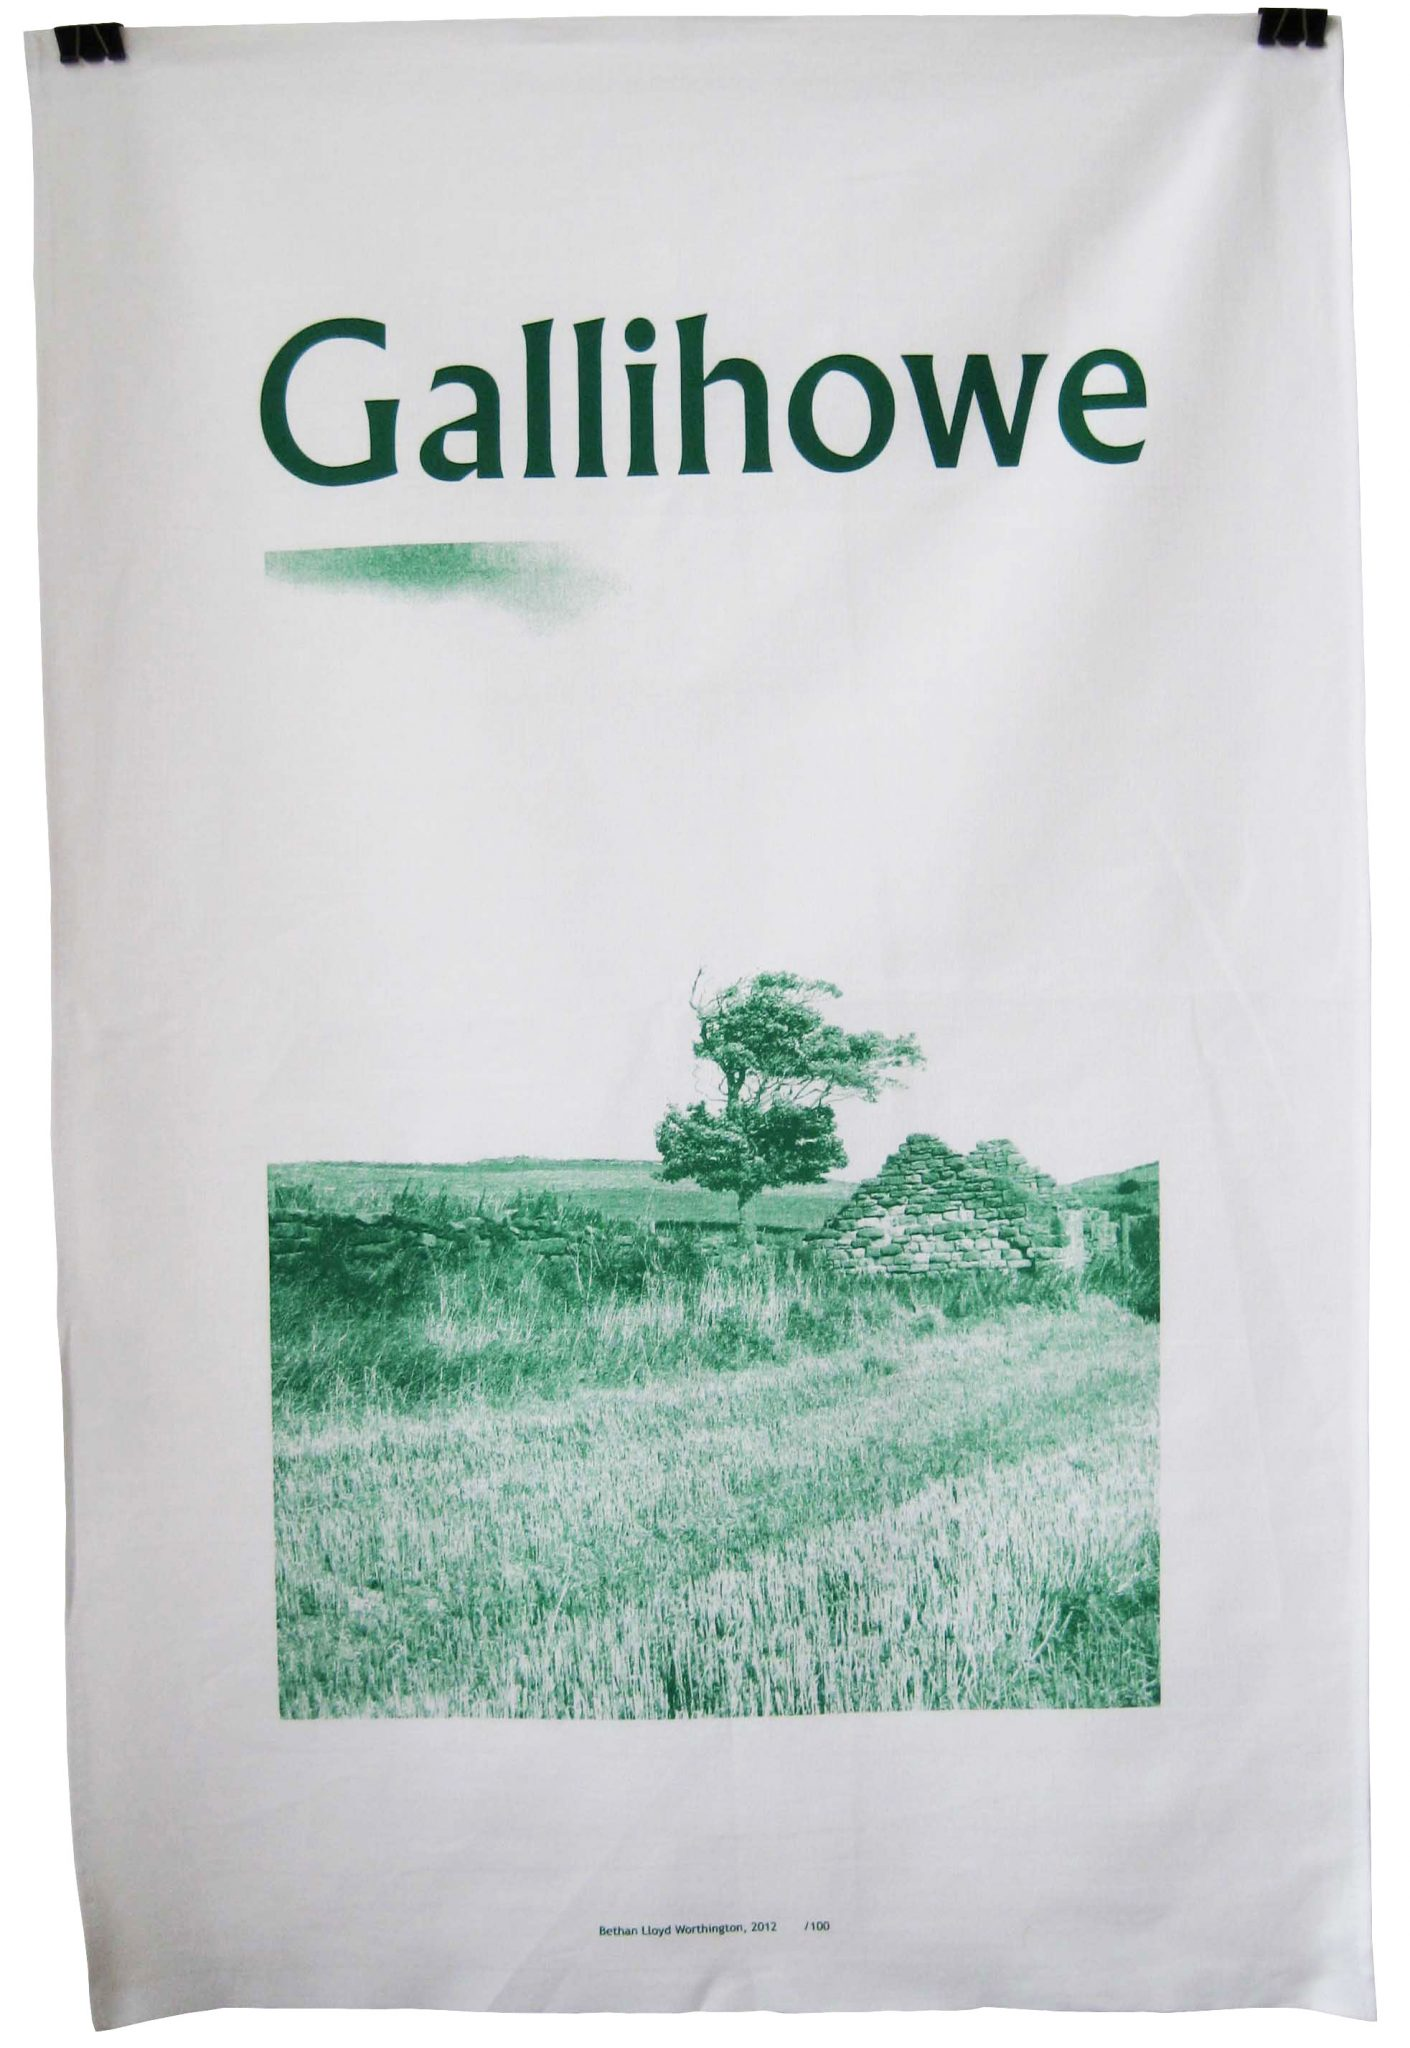 Gallihowe teatowel - Screenprinted on cotton. A souvenir of a place that no longer exists.